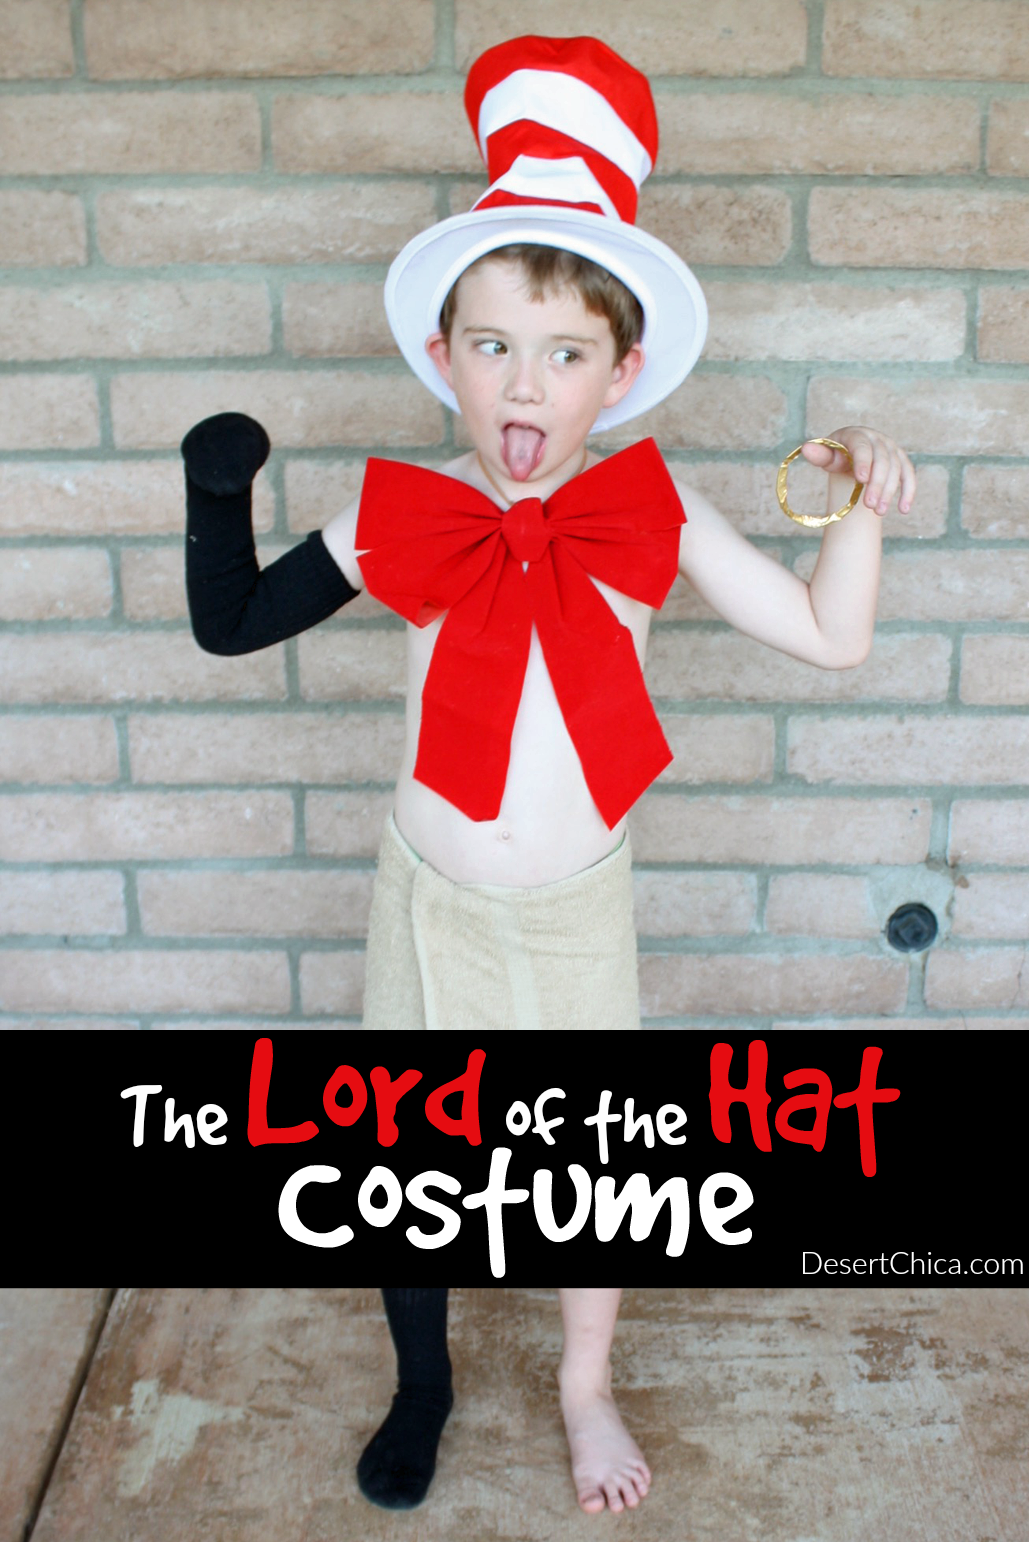 The Lord of the Hat is crazy mixed up character in the Creature From My Closet Book Series. The Lord of the Hat costume is part Gollum and part Cat in the Hat